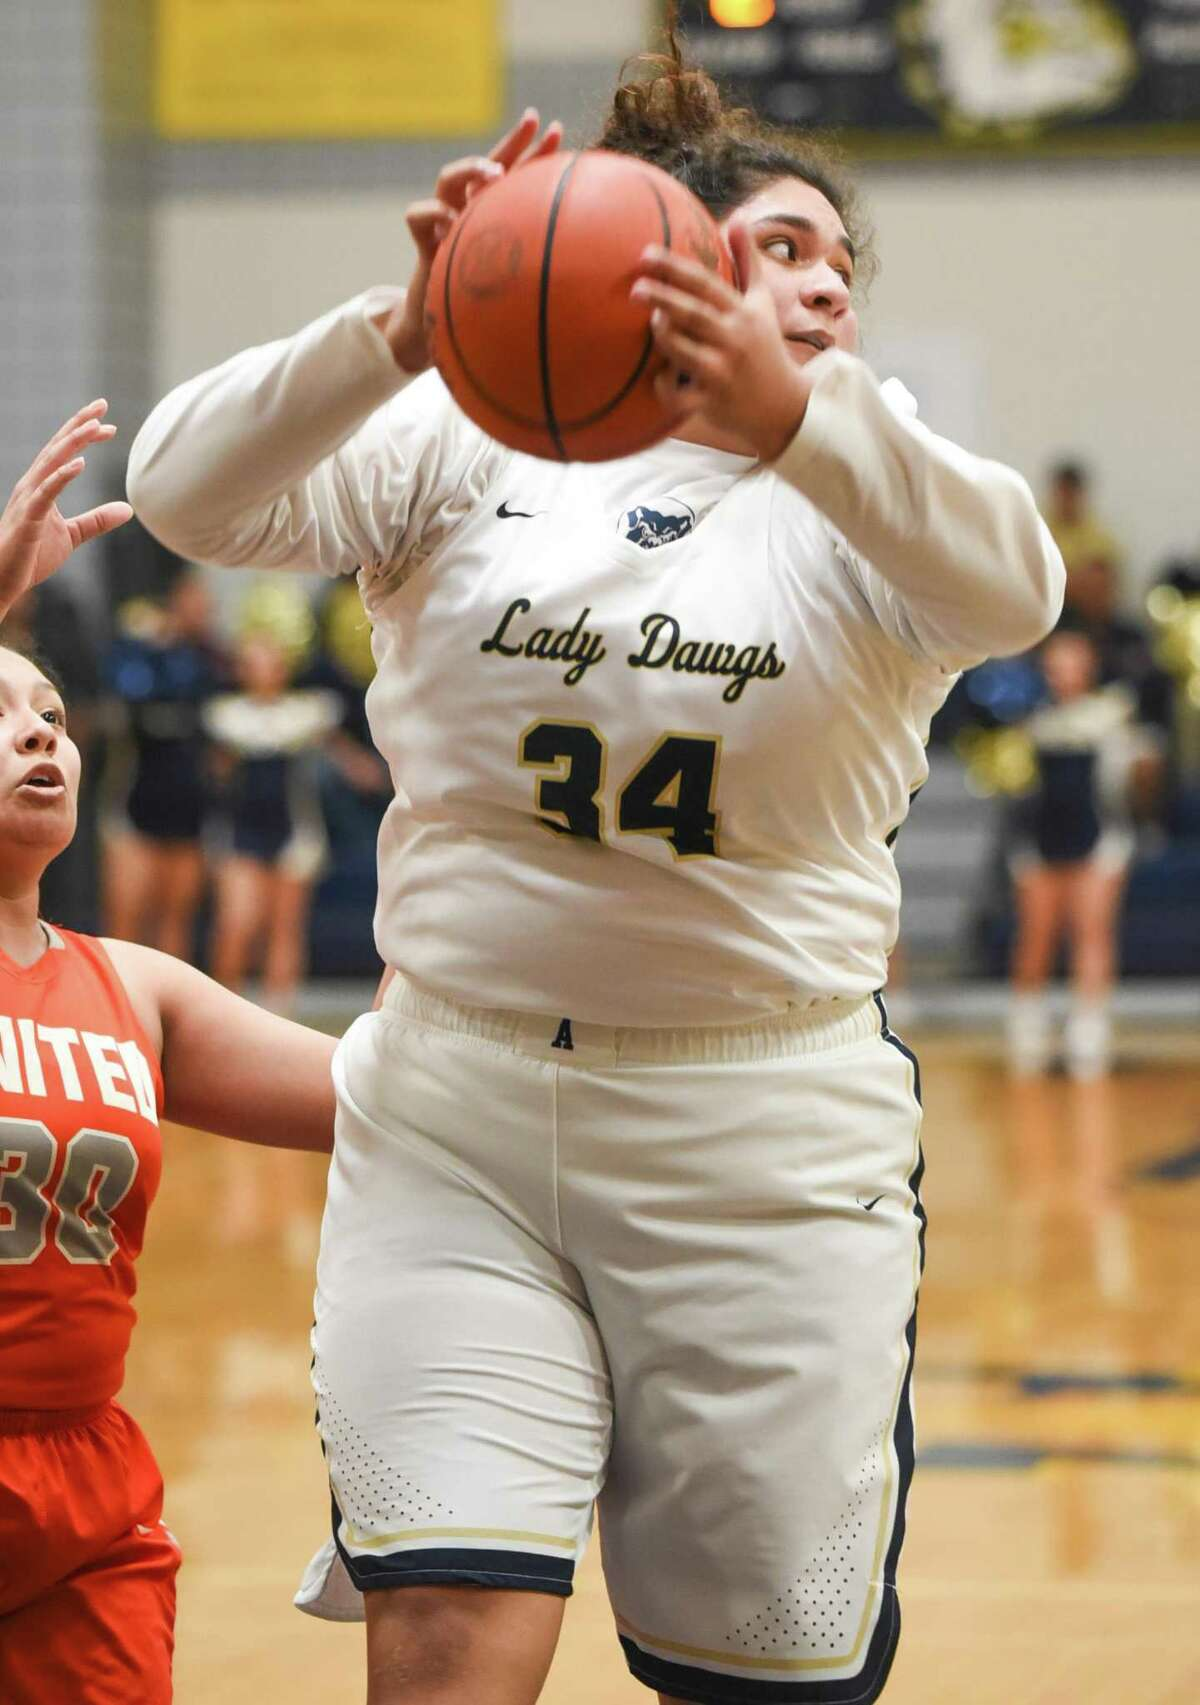 Yuli Zamora and Alexander advanced to the regional semifinals with a 68-63 win Monday over rival United.